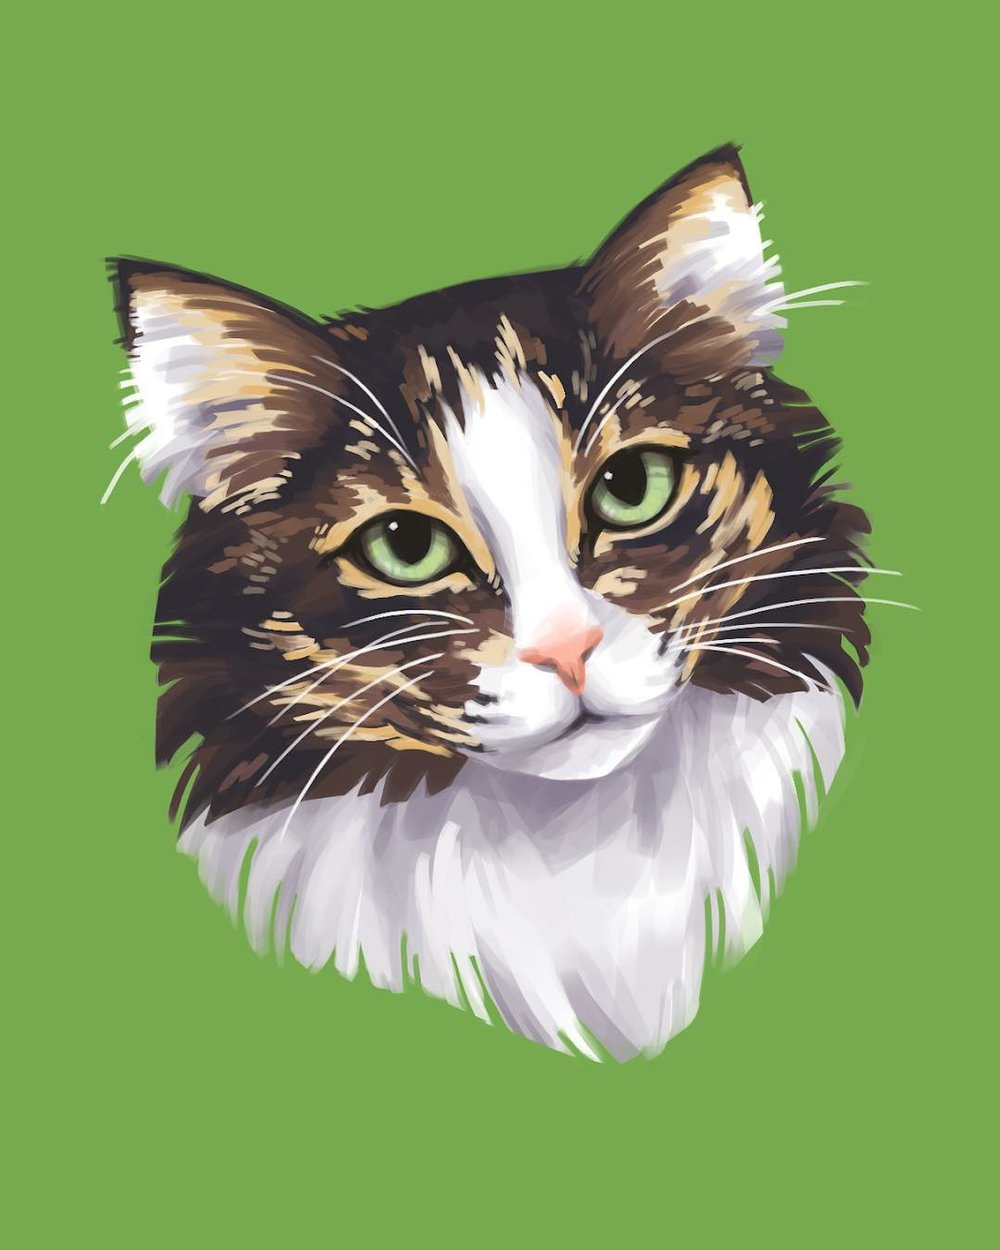 To help her find her family, Mini has been featured in our art show located at Cat Town. The piece has been donated by the artist and her lucky adopter will take home the original work to commemorate the occasion.